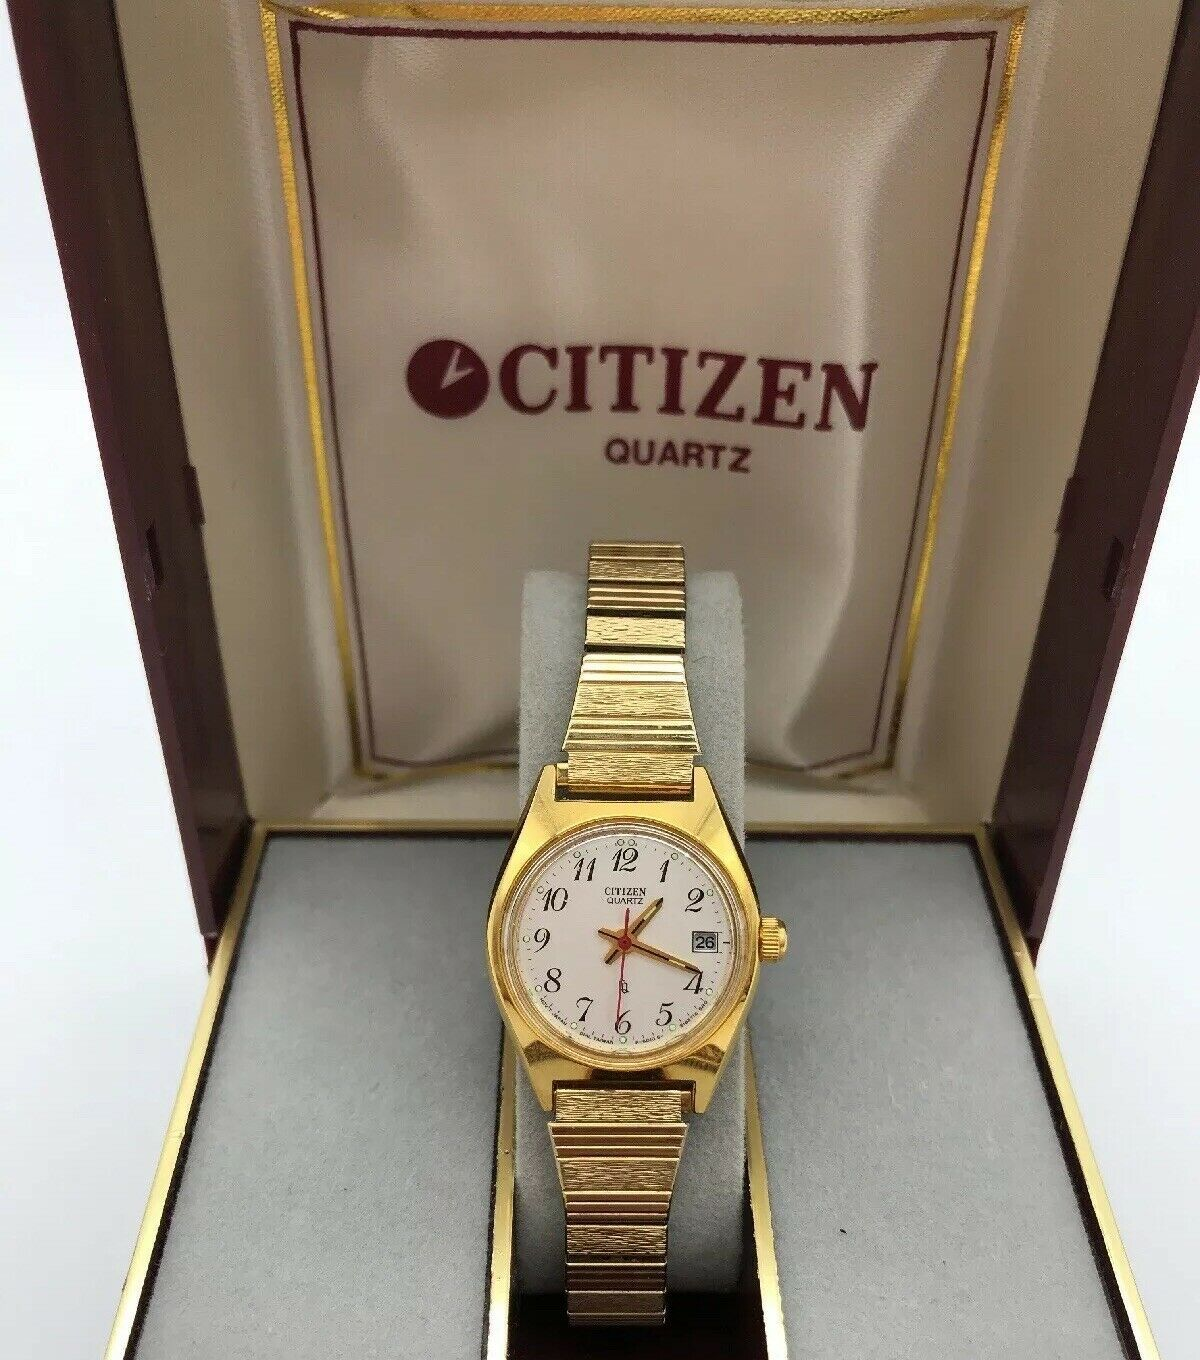 Vintage Women's CITIZEN Wrist Watch .......... Reloj de mujer marca CITIZEN.